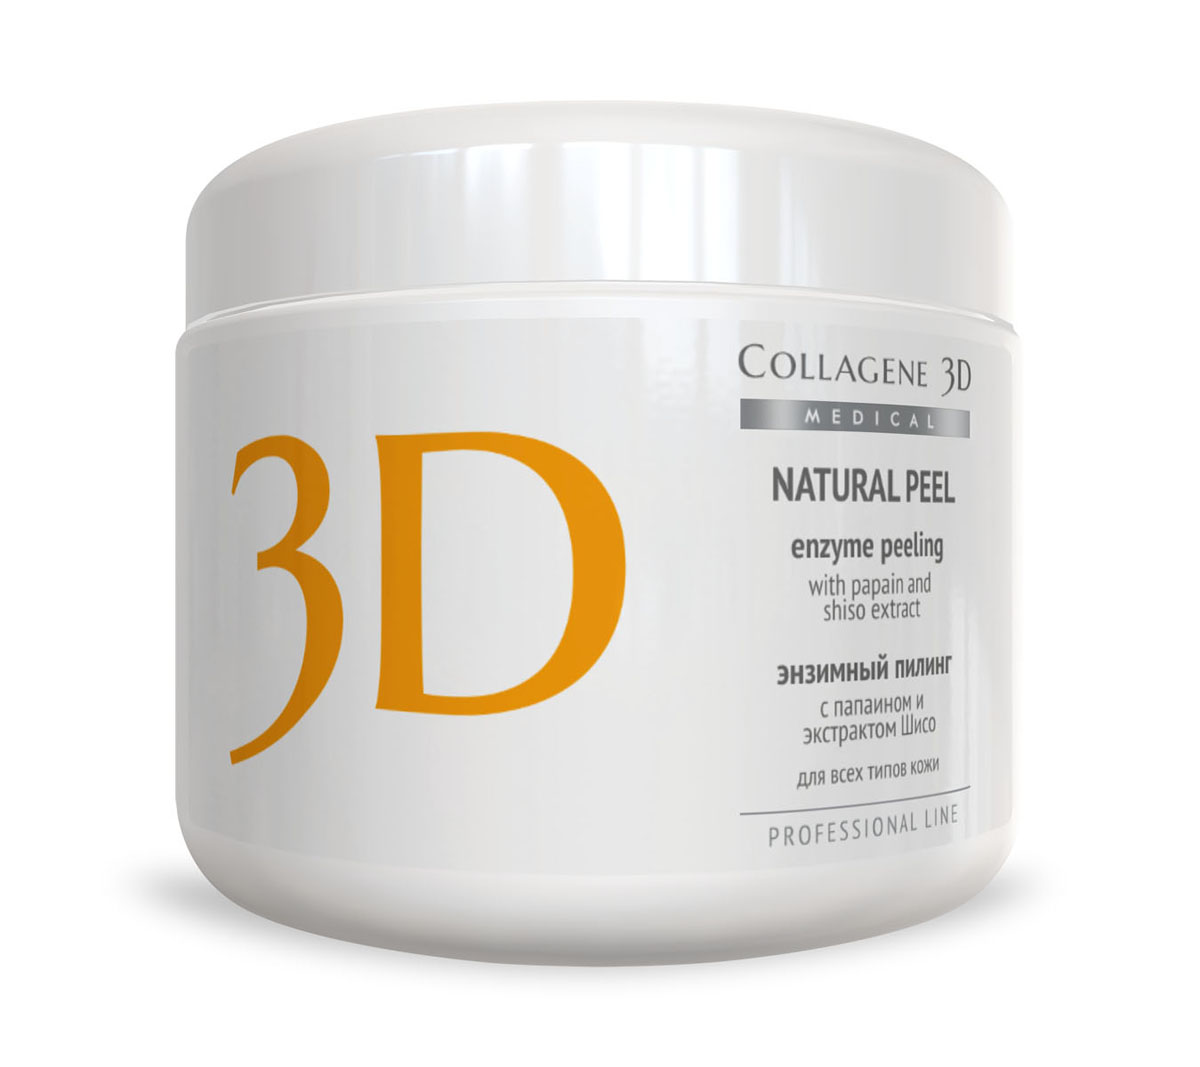 Medical Collagene 3D Пилинг ферментативный для лица Natural peel с папаином и шисо, 150 г medical collagene 3d энзимный пилинг c коллагеназой medical collagene 3d natural peel enzyme peeling 26005 150 мл